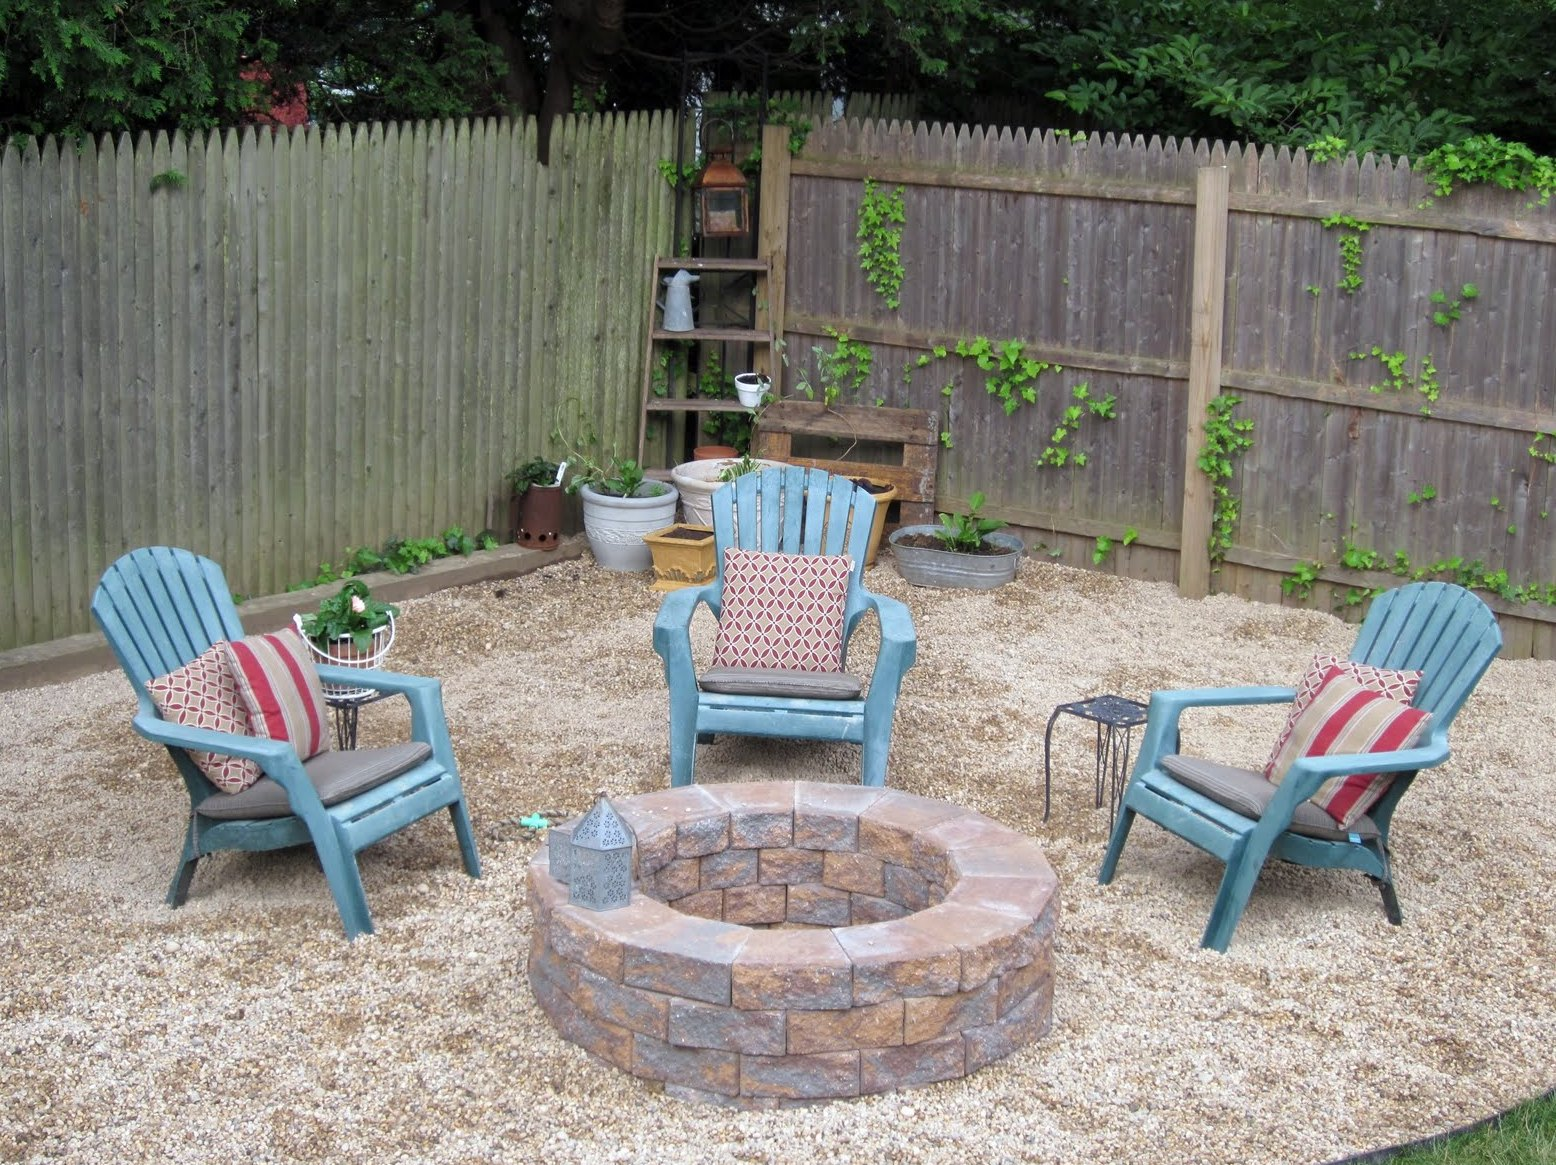 Exceptionnel Round Underground Fire Pit With Brick Building Outdoor Furniture In Blue  Plus Decorative Pillows